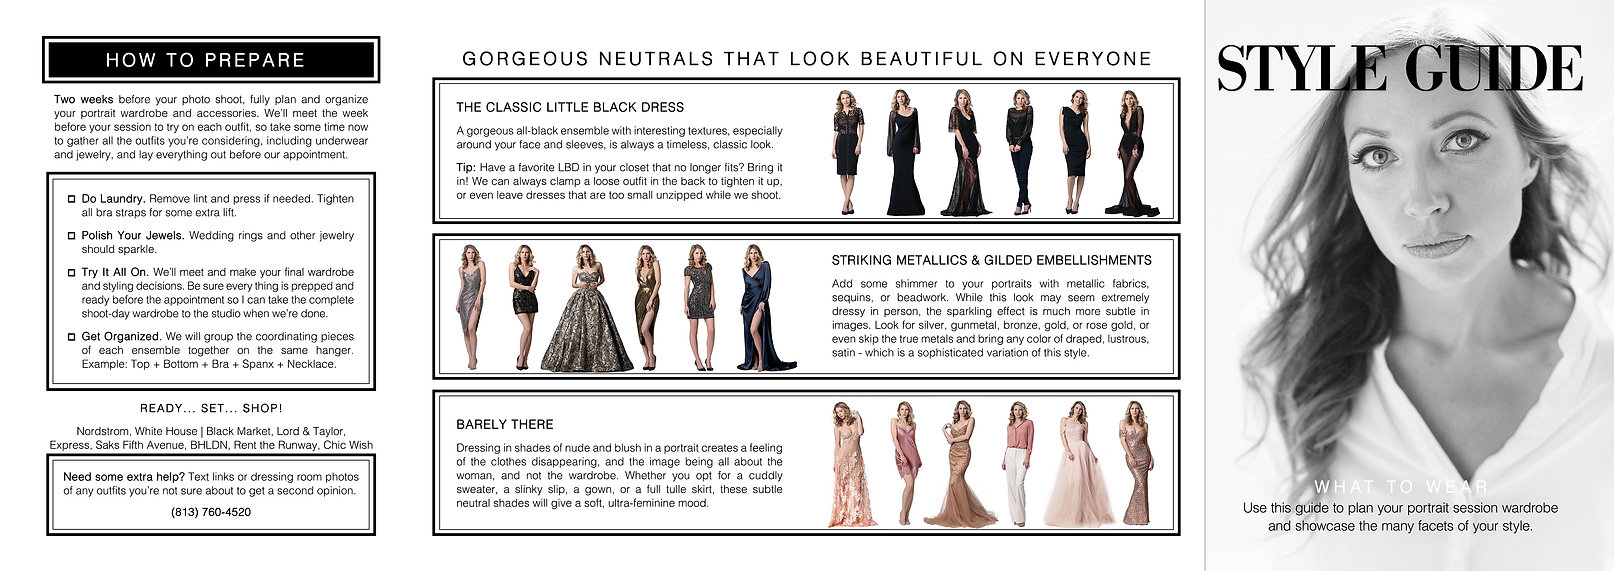 Style Guide Outside Spread.jpg